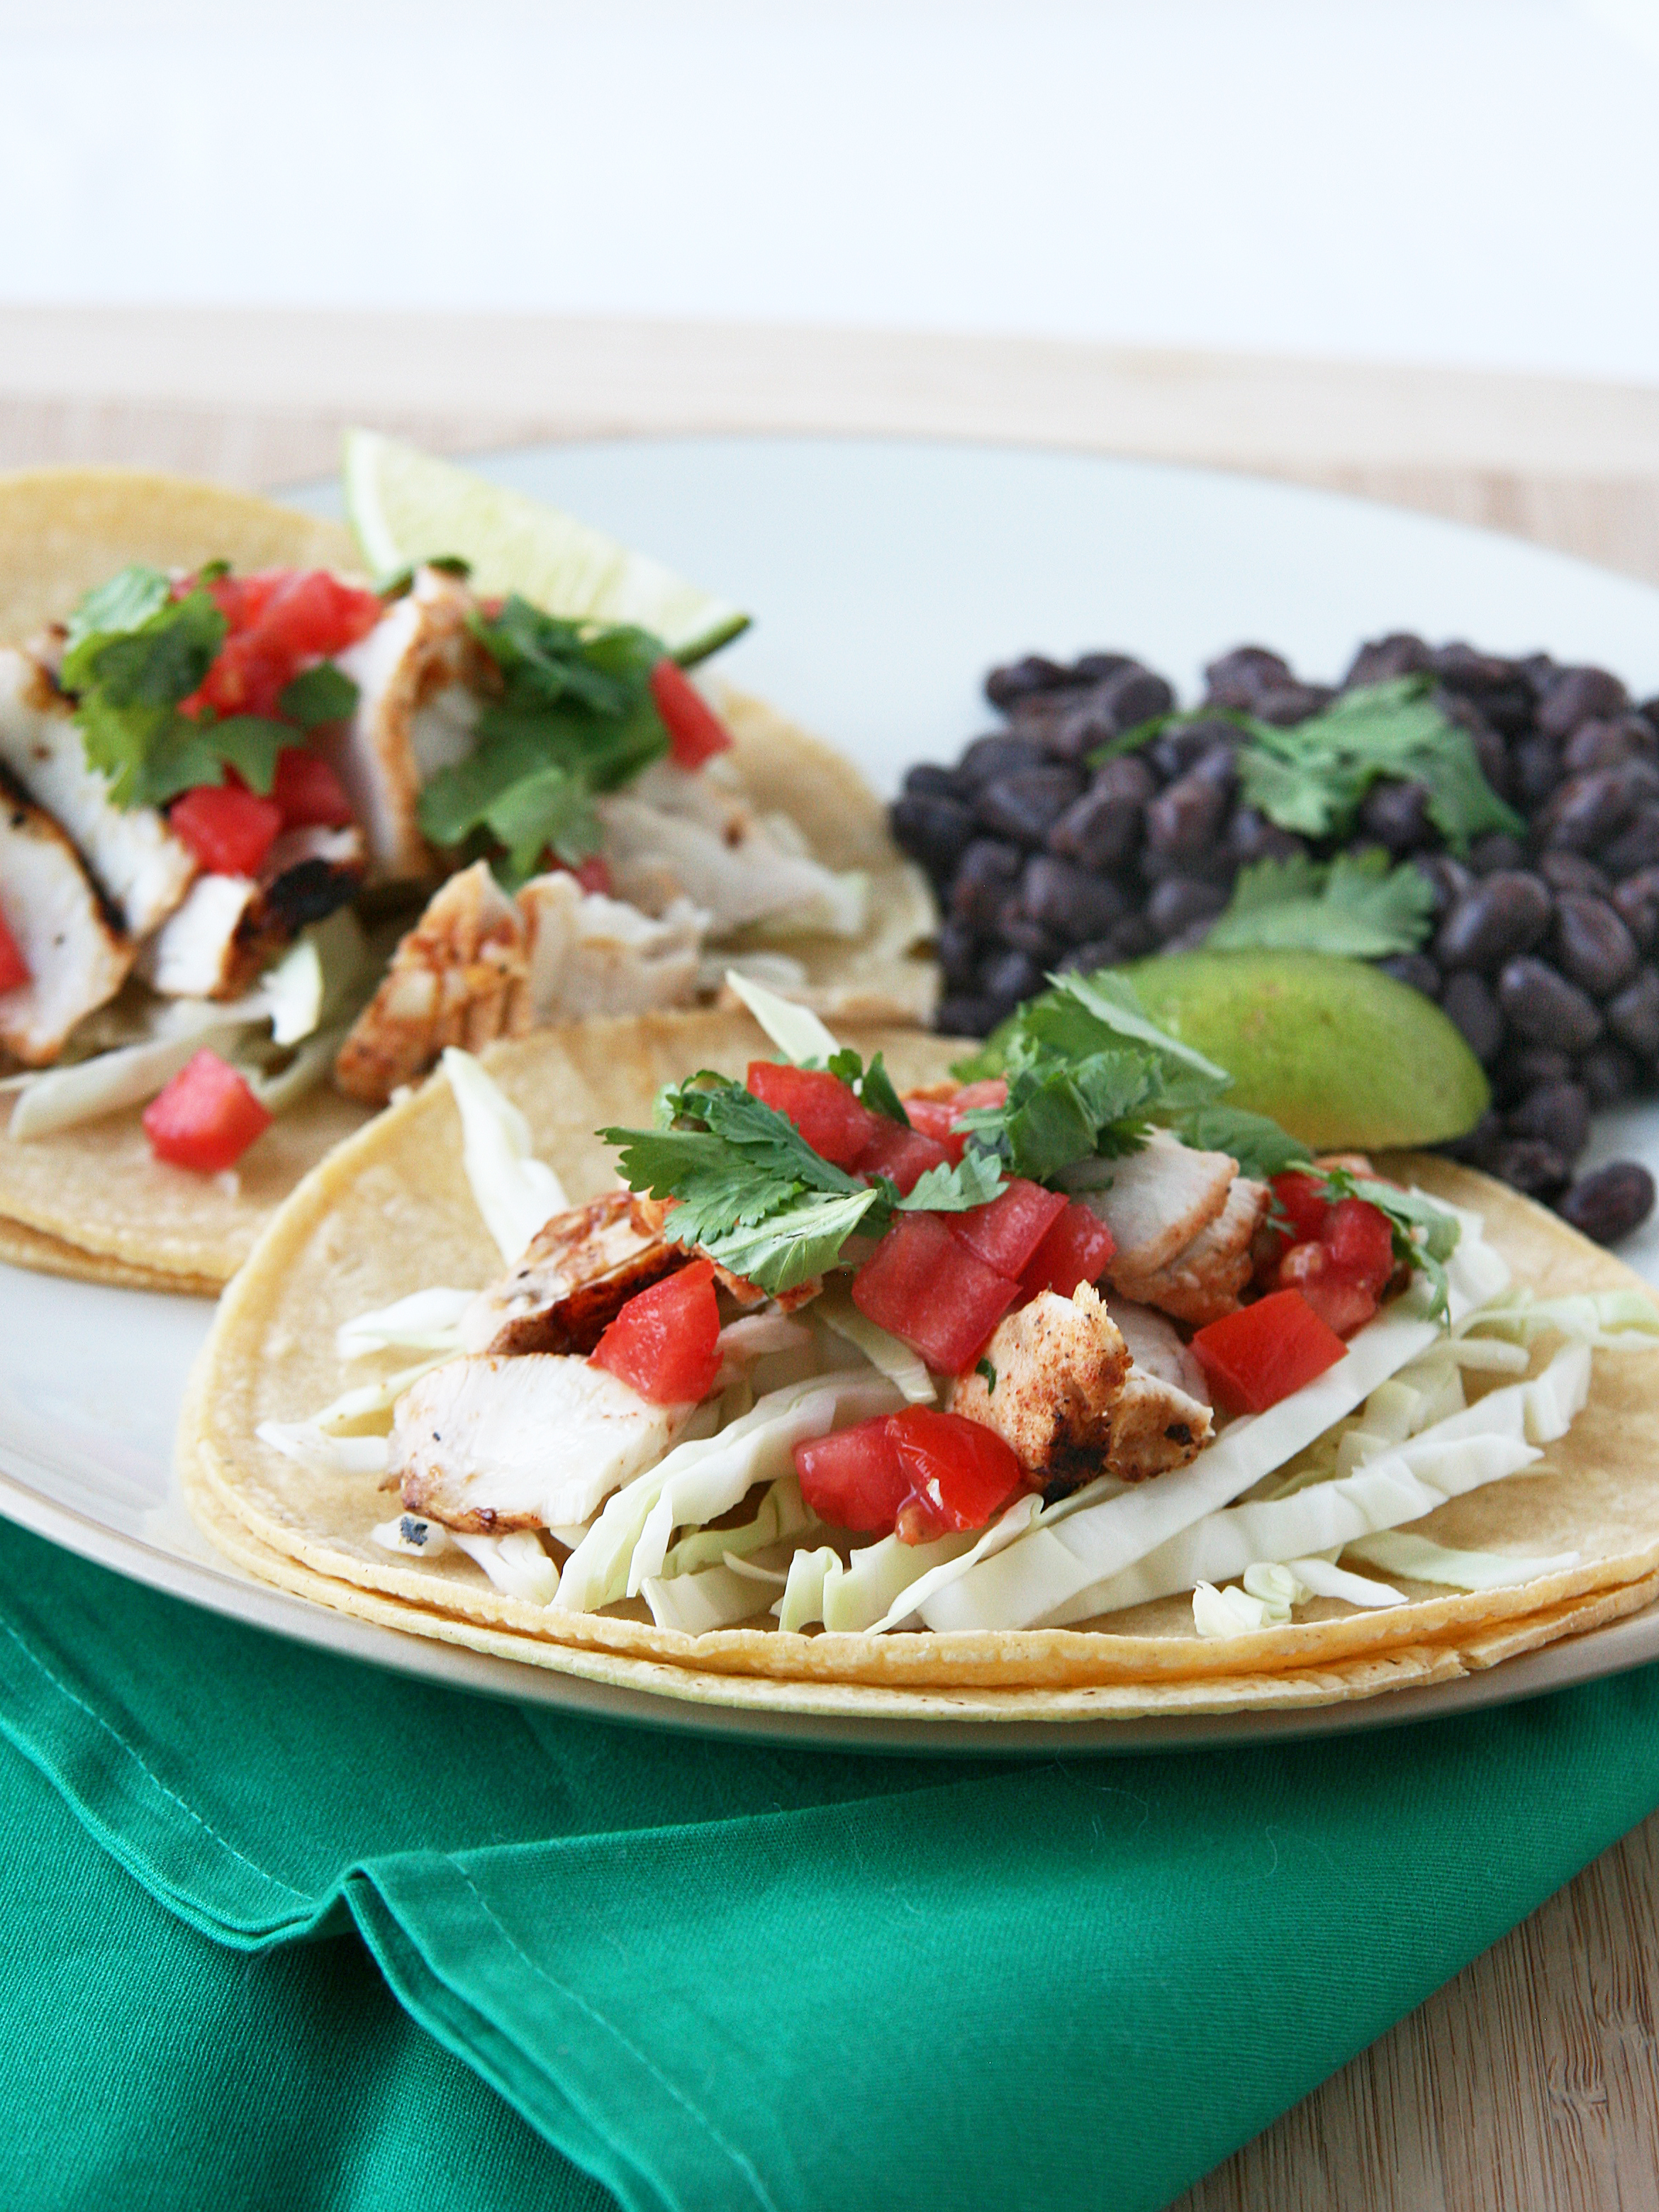 how to mae normal fish tacos